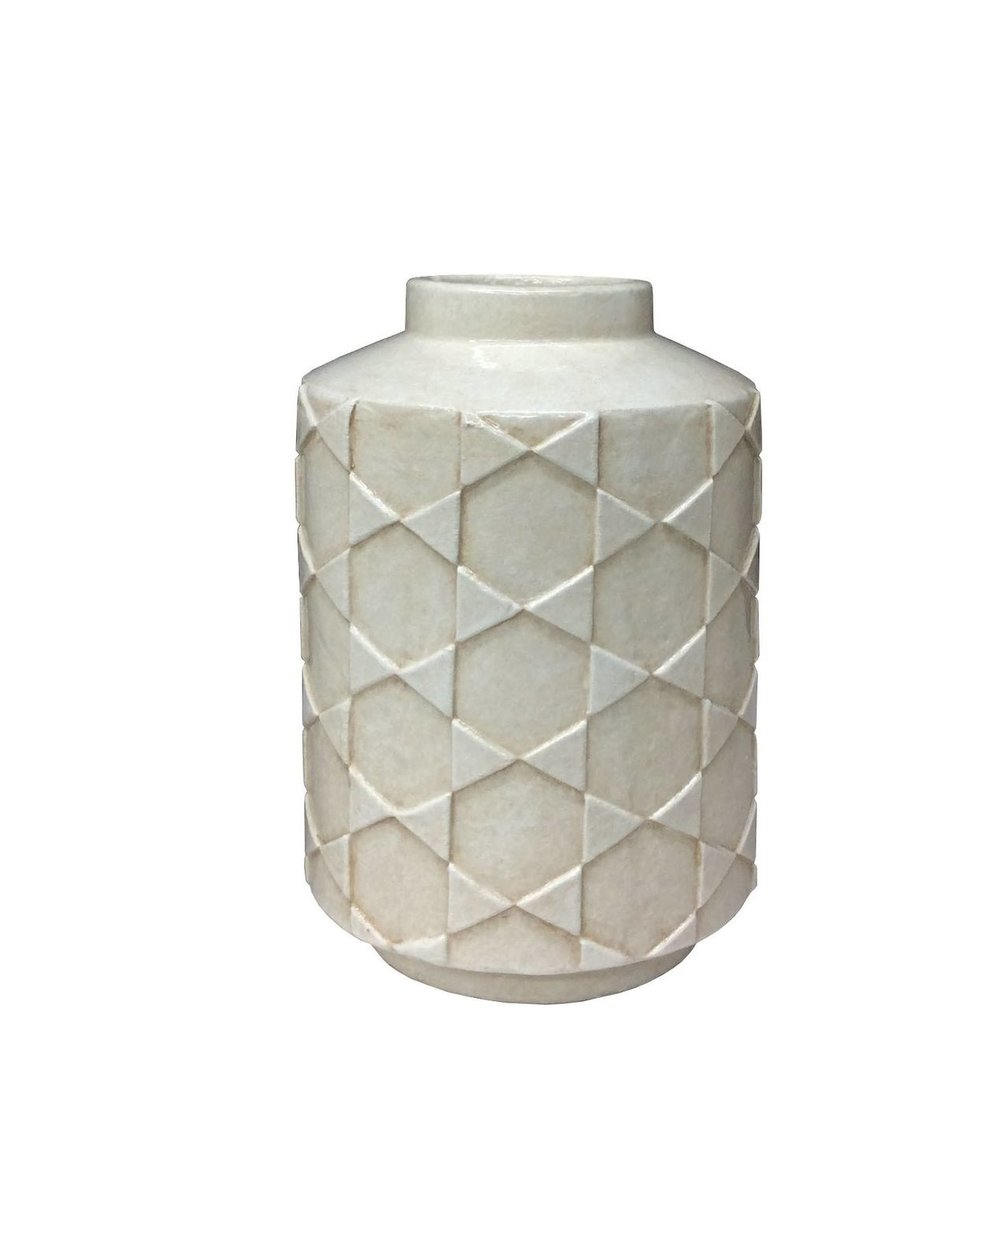 9. Earthenware Vase ($19)